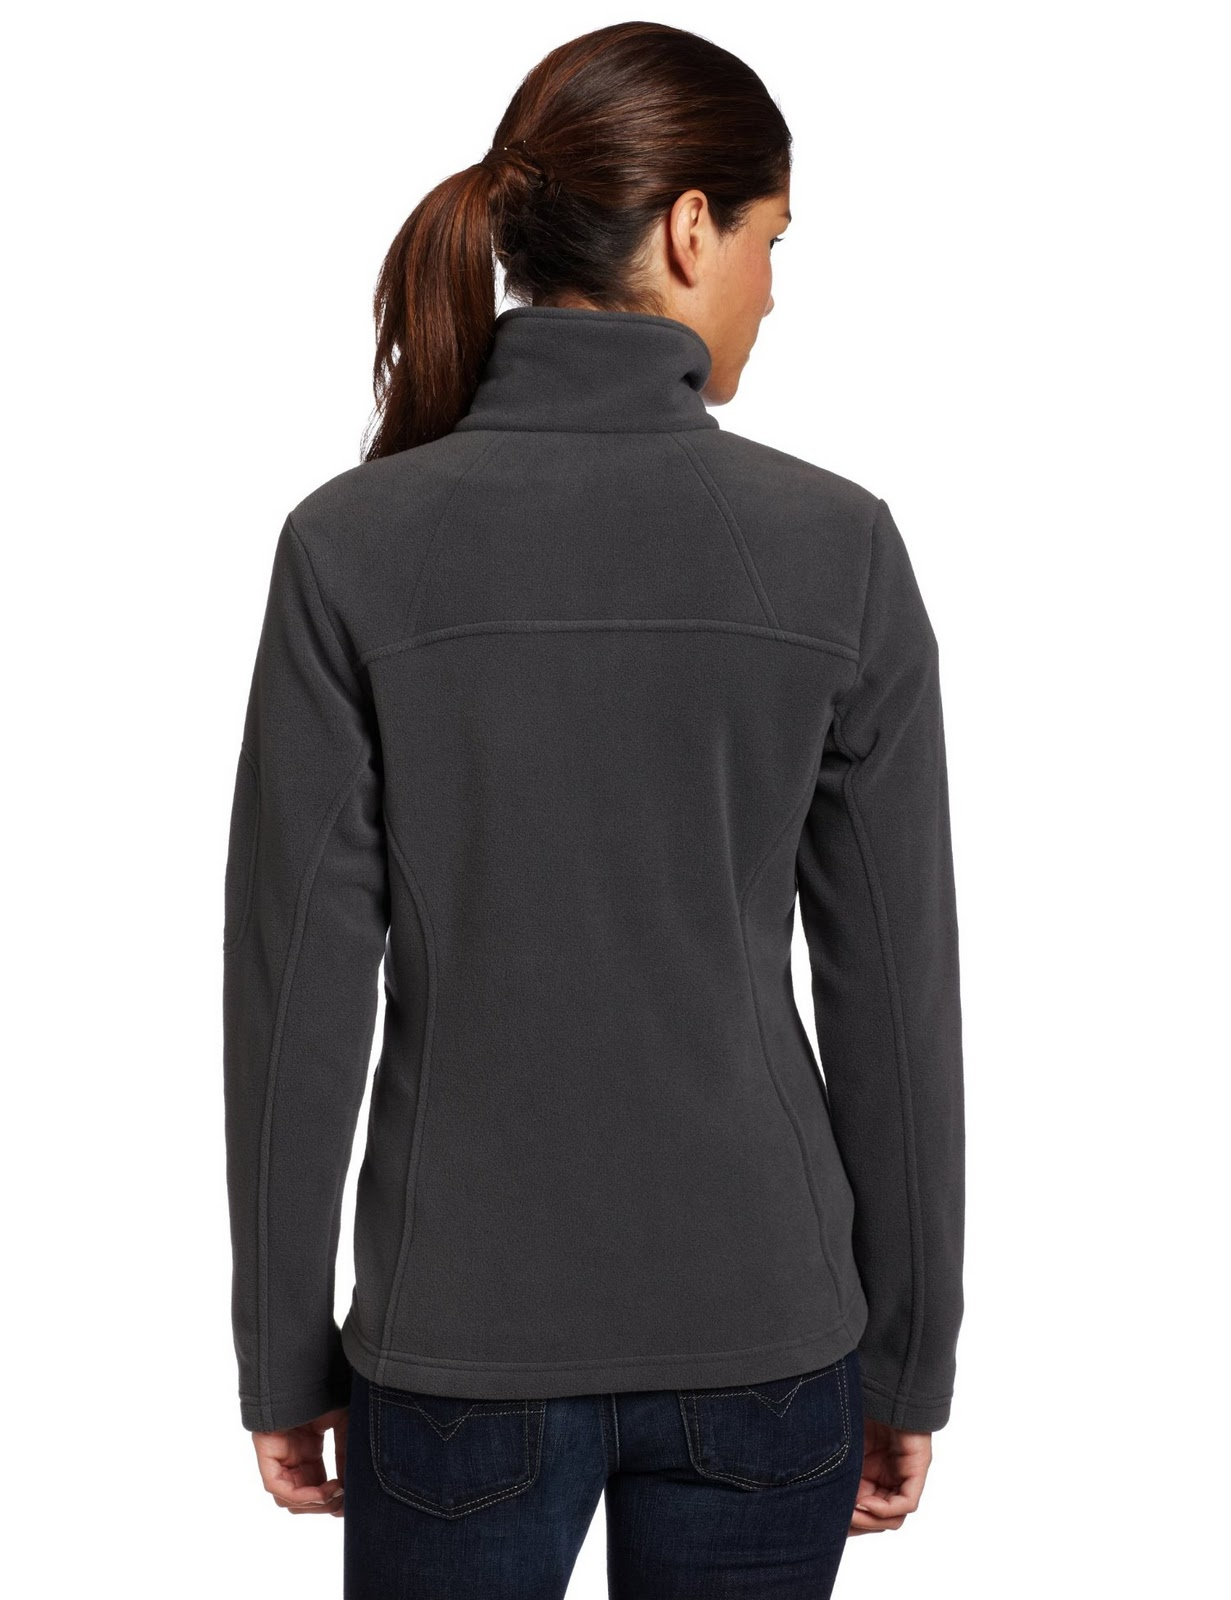 Discover the best Women's Fleece Jackets & Coats in Best Sellers. Find the top most popular items in Amazon Best Sellers.